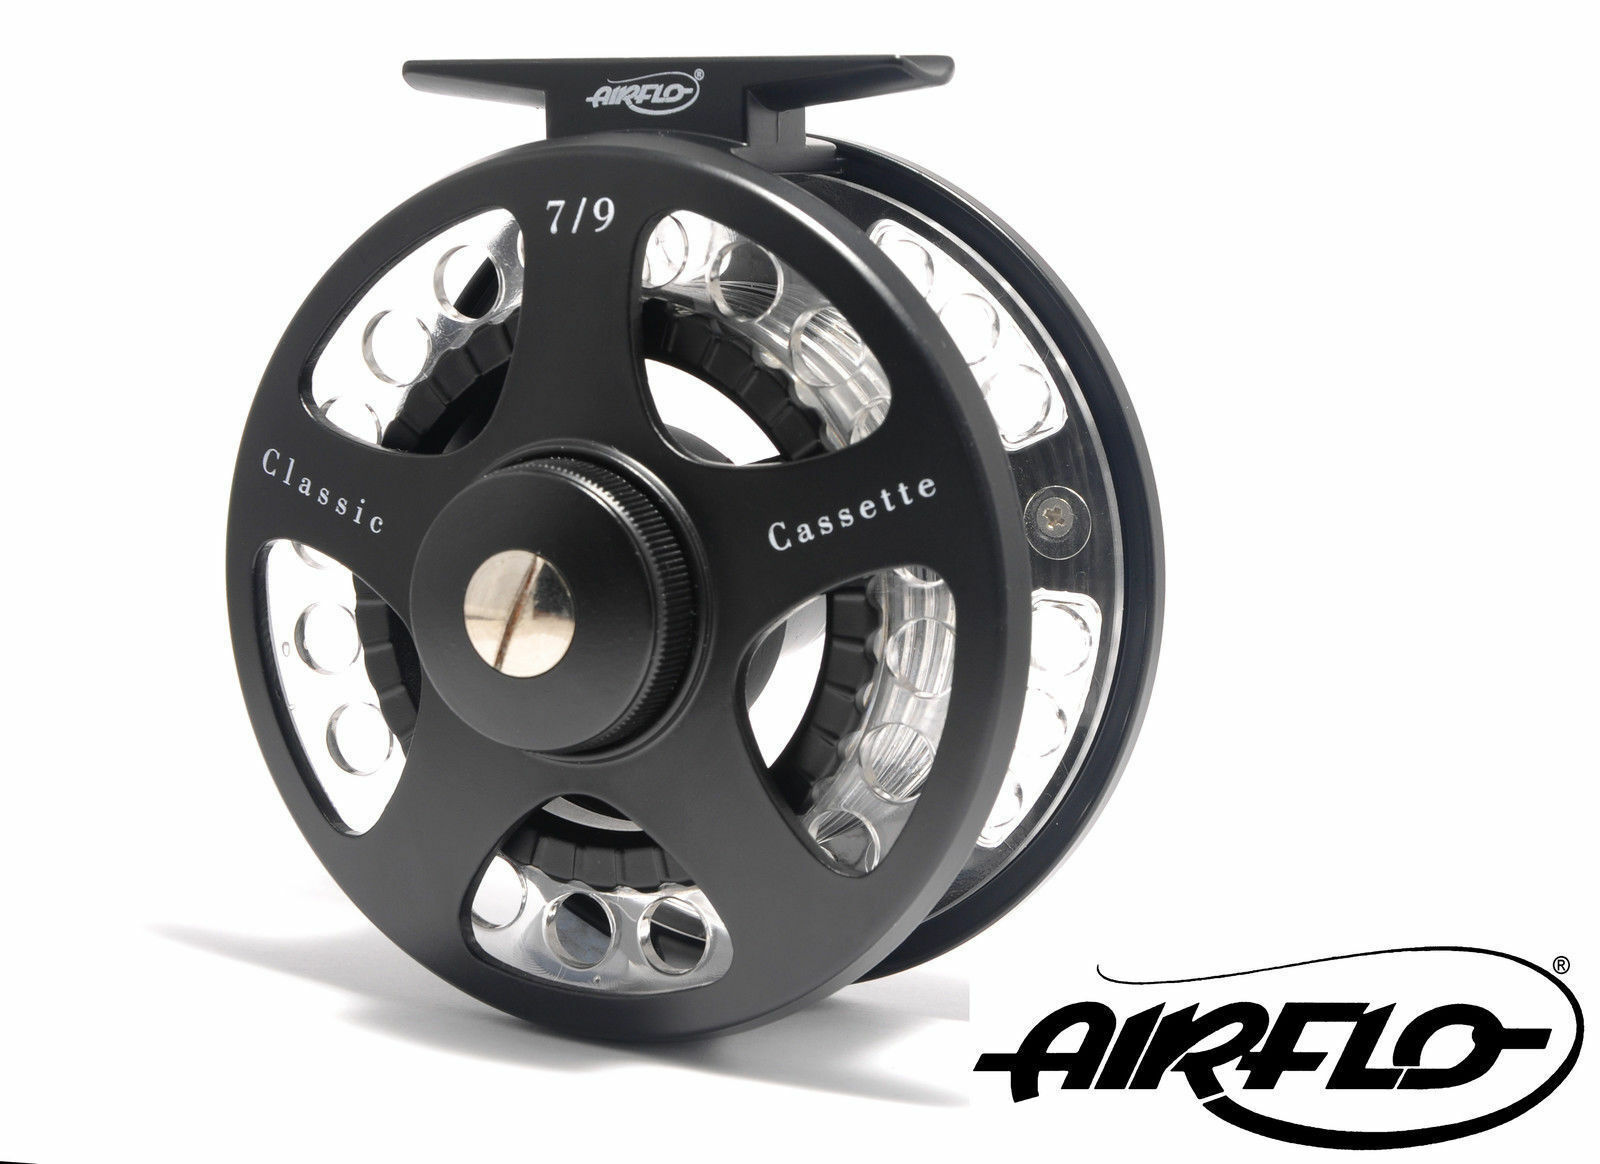 Brand new Lightweight Airflo Classic Cassette Trout fly Reel 7/9 4 spare spools